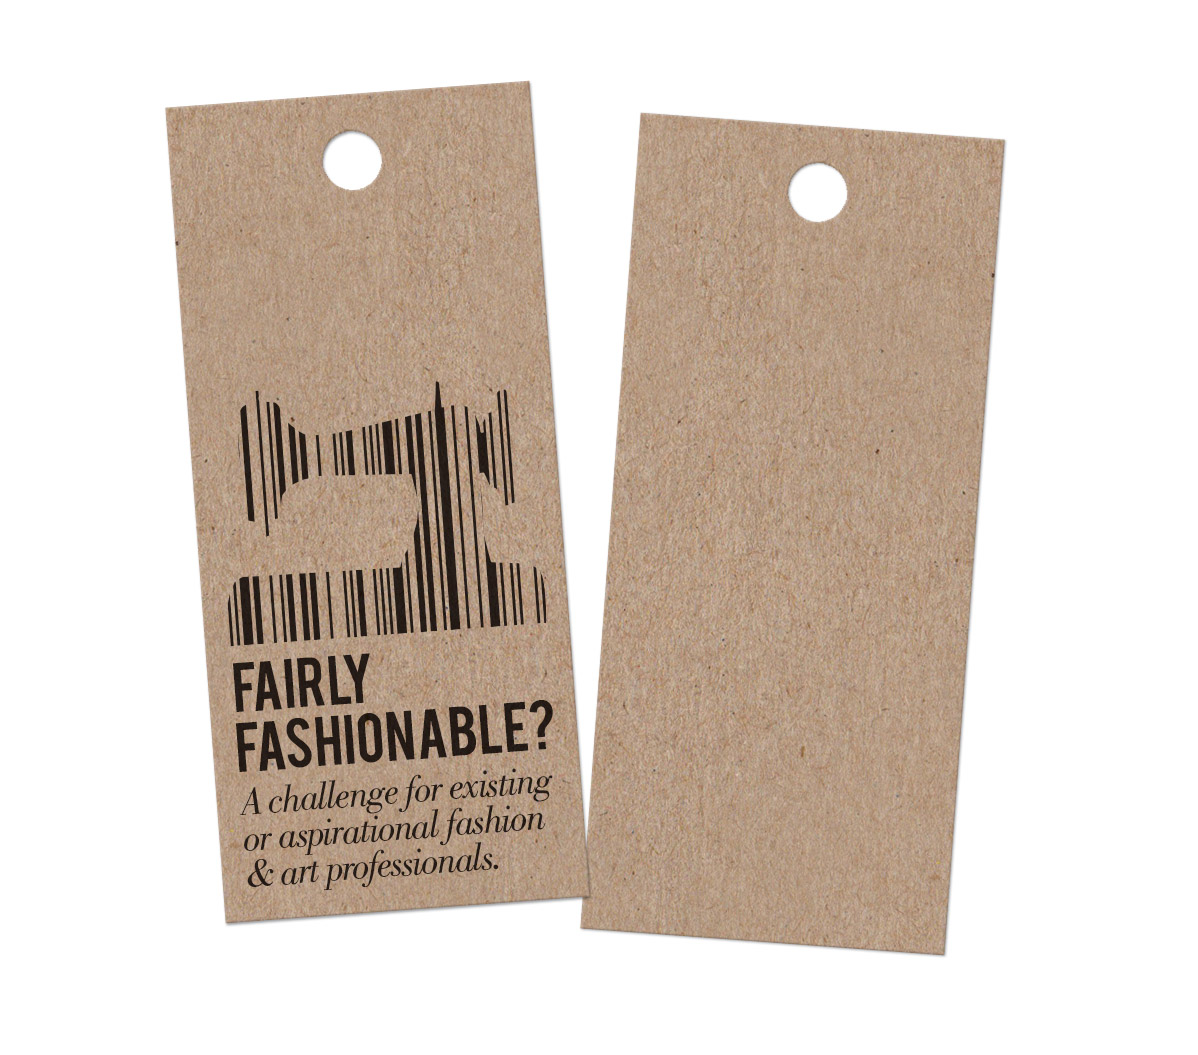 FairlyFashionable-swingtags.jpg